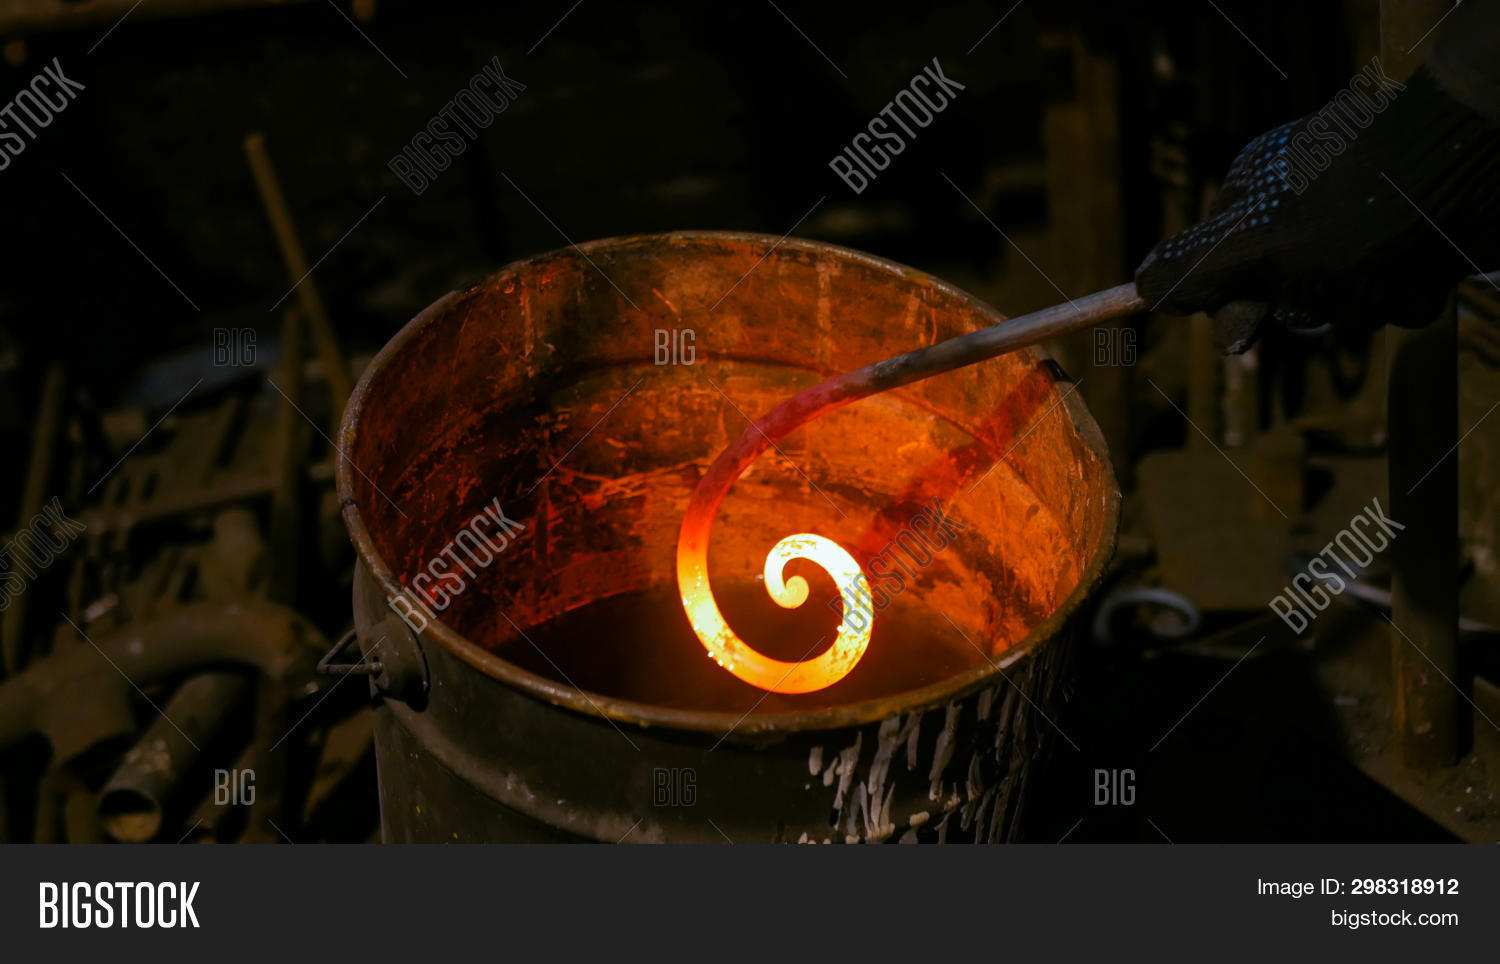 art,authentic,blacksmith,bright,bucket,chill,closeup,concept,cooling,craft,detail,element,equipment,farrier,fire,forge,glowing,hand,handmade,handwork,heat,hot,industry,iron,ironwork,make,manual,manufacture,manufacturing,melting,metal,metalwork,molten,occupation,quench,revival,skill,smith,smithery,smithy,smoke,solid,steam,steel,temperature,traditional,vapor,water,workshop